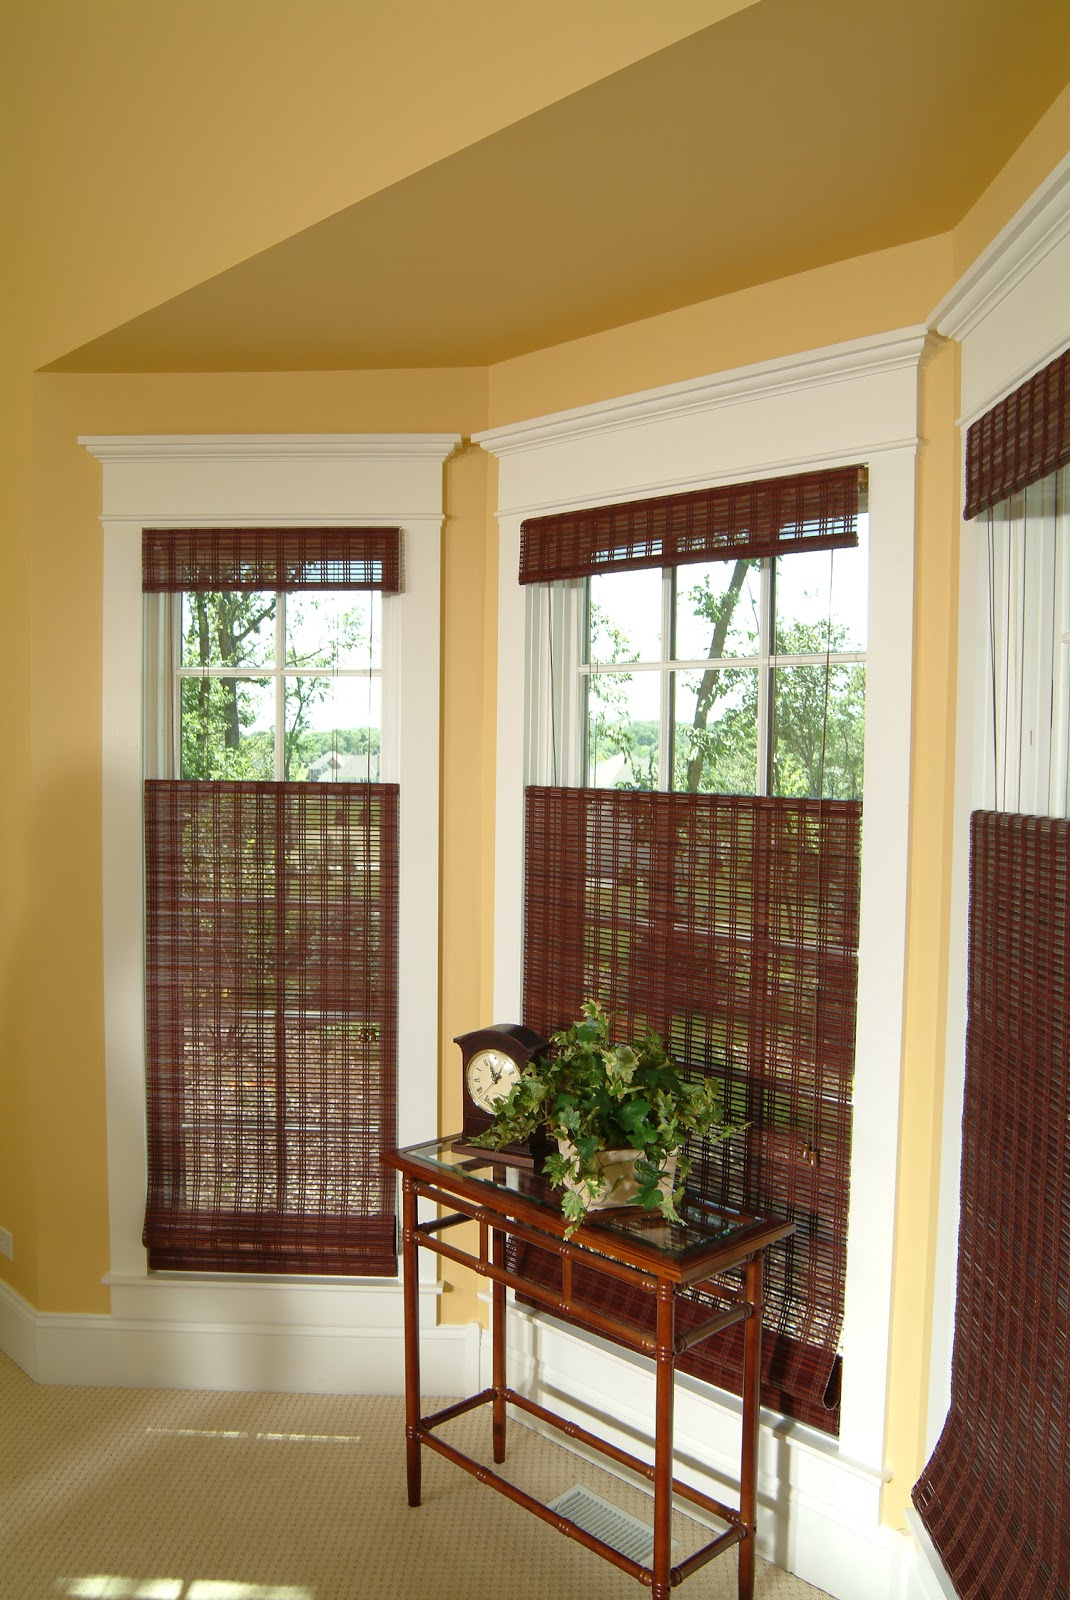 Youngblood interiors clean simple window treatments - Living room picture window treatments ...